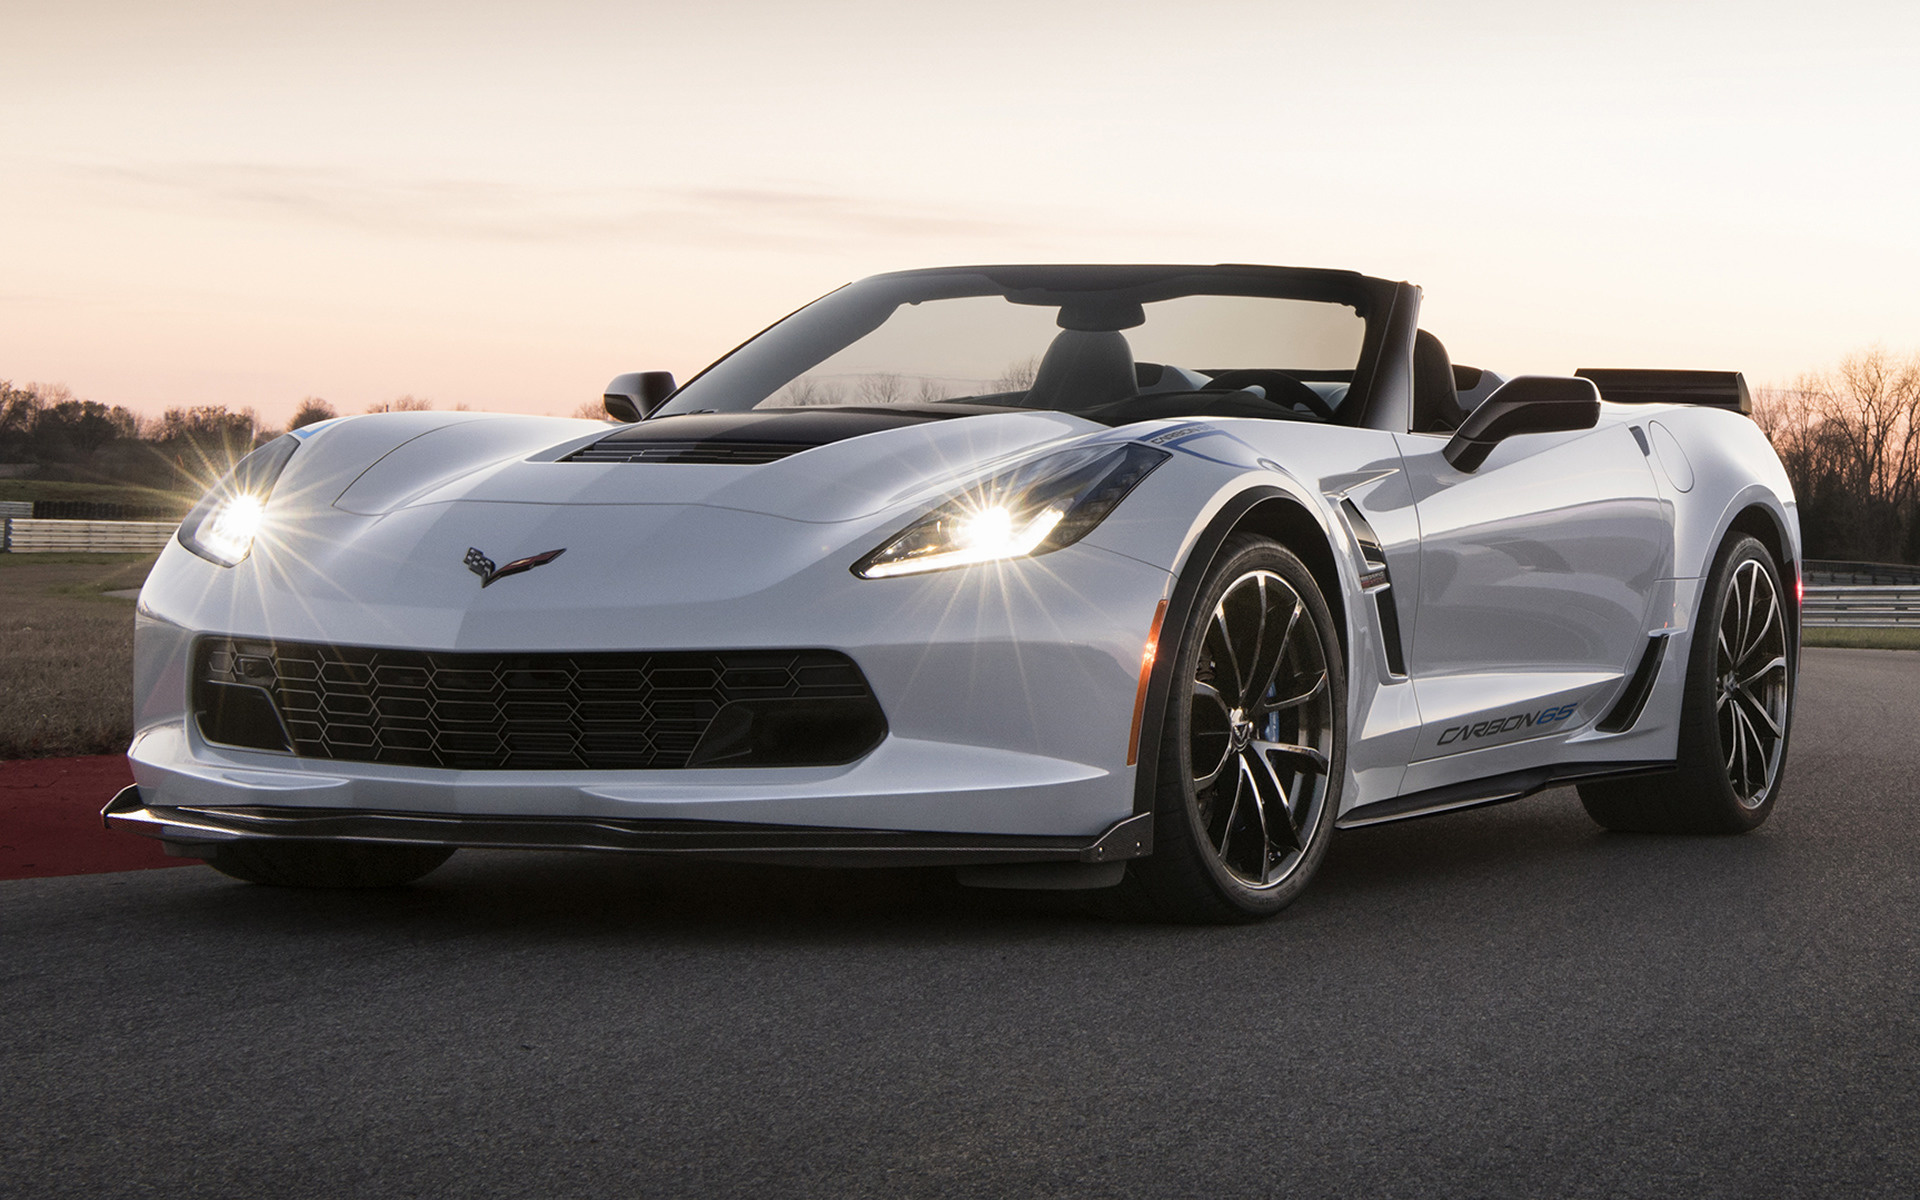 2018 Chevrolet Corvette Grand Sport Convertible Carbon 65